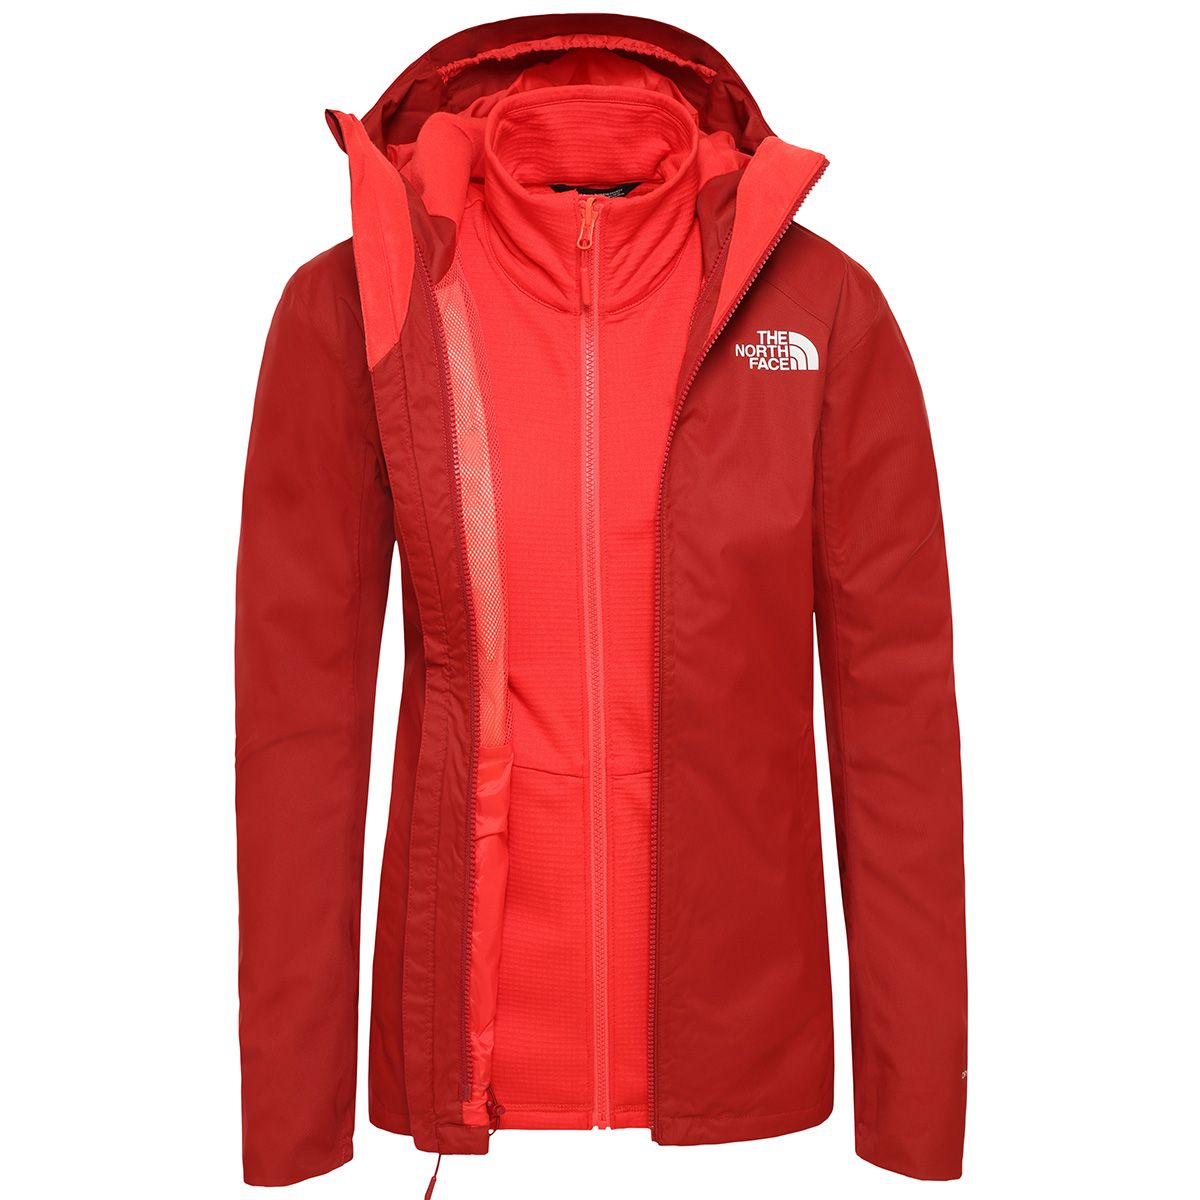 The North Face Damen Quest Triclimate Jacke (Größe XS, Rot) | Doppeljacken > Damen